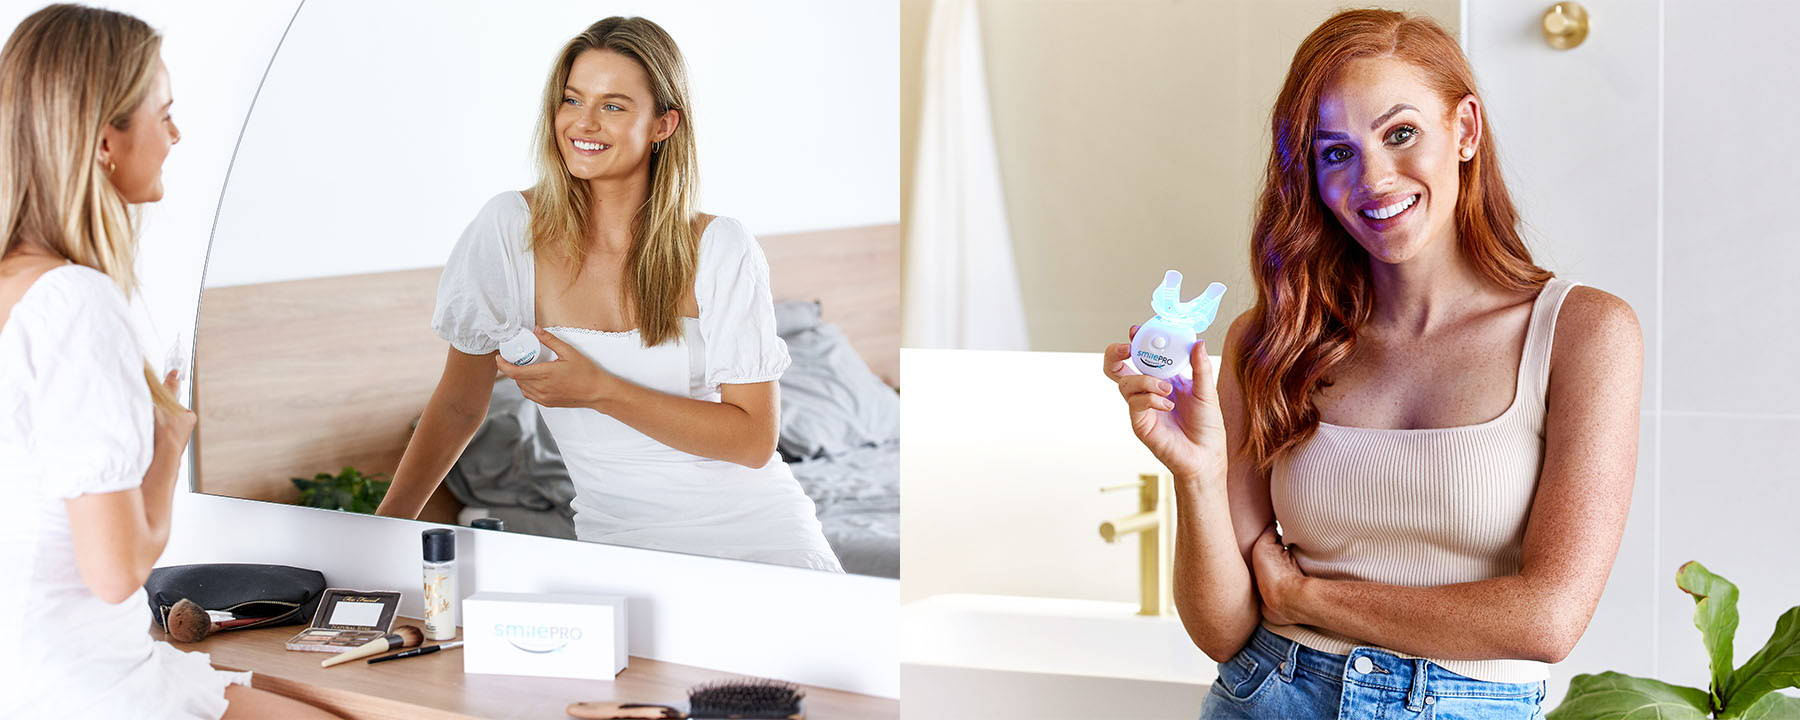 SmilePro at home advanced teeth whitening kits.